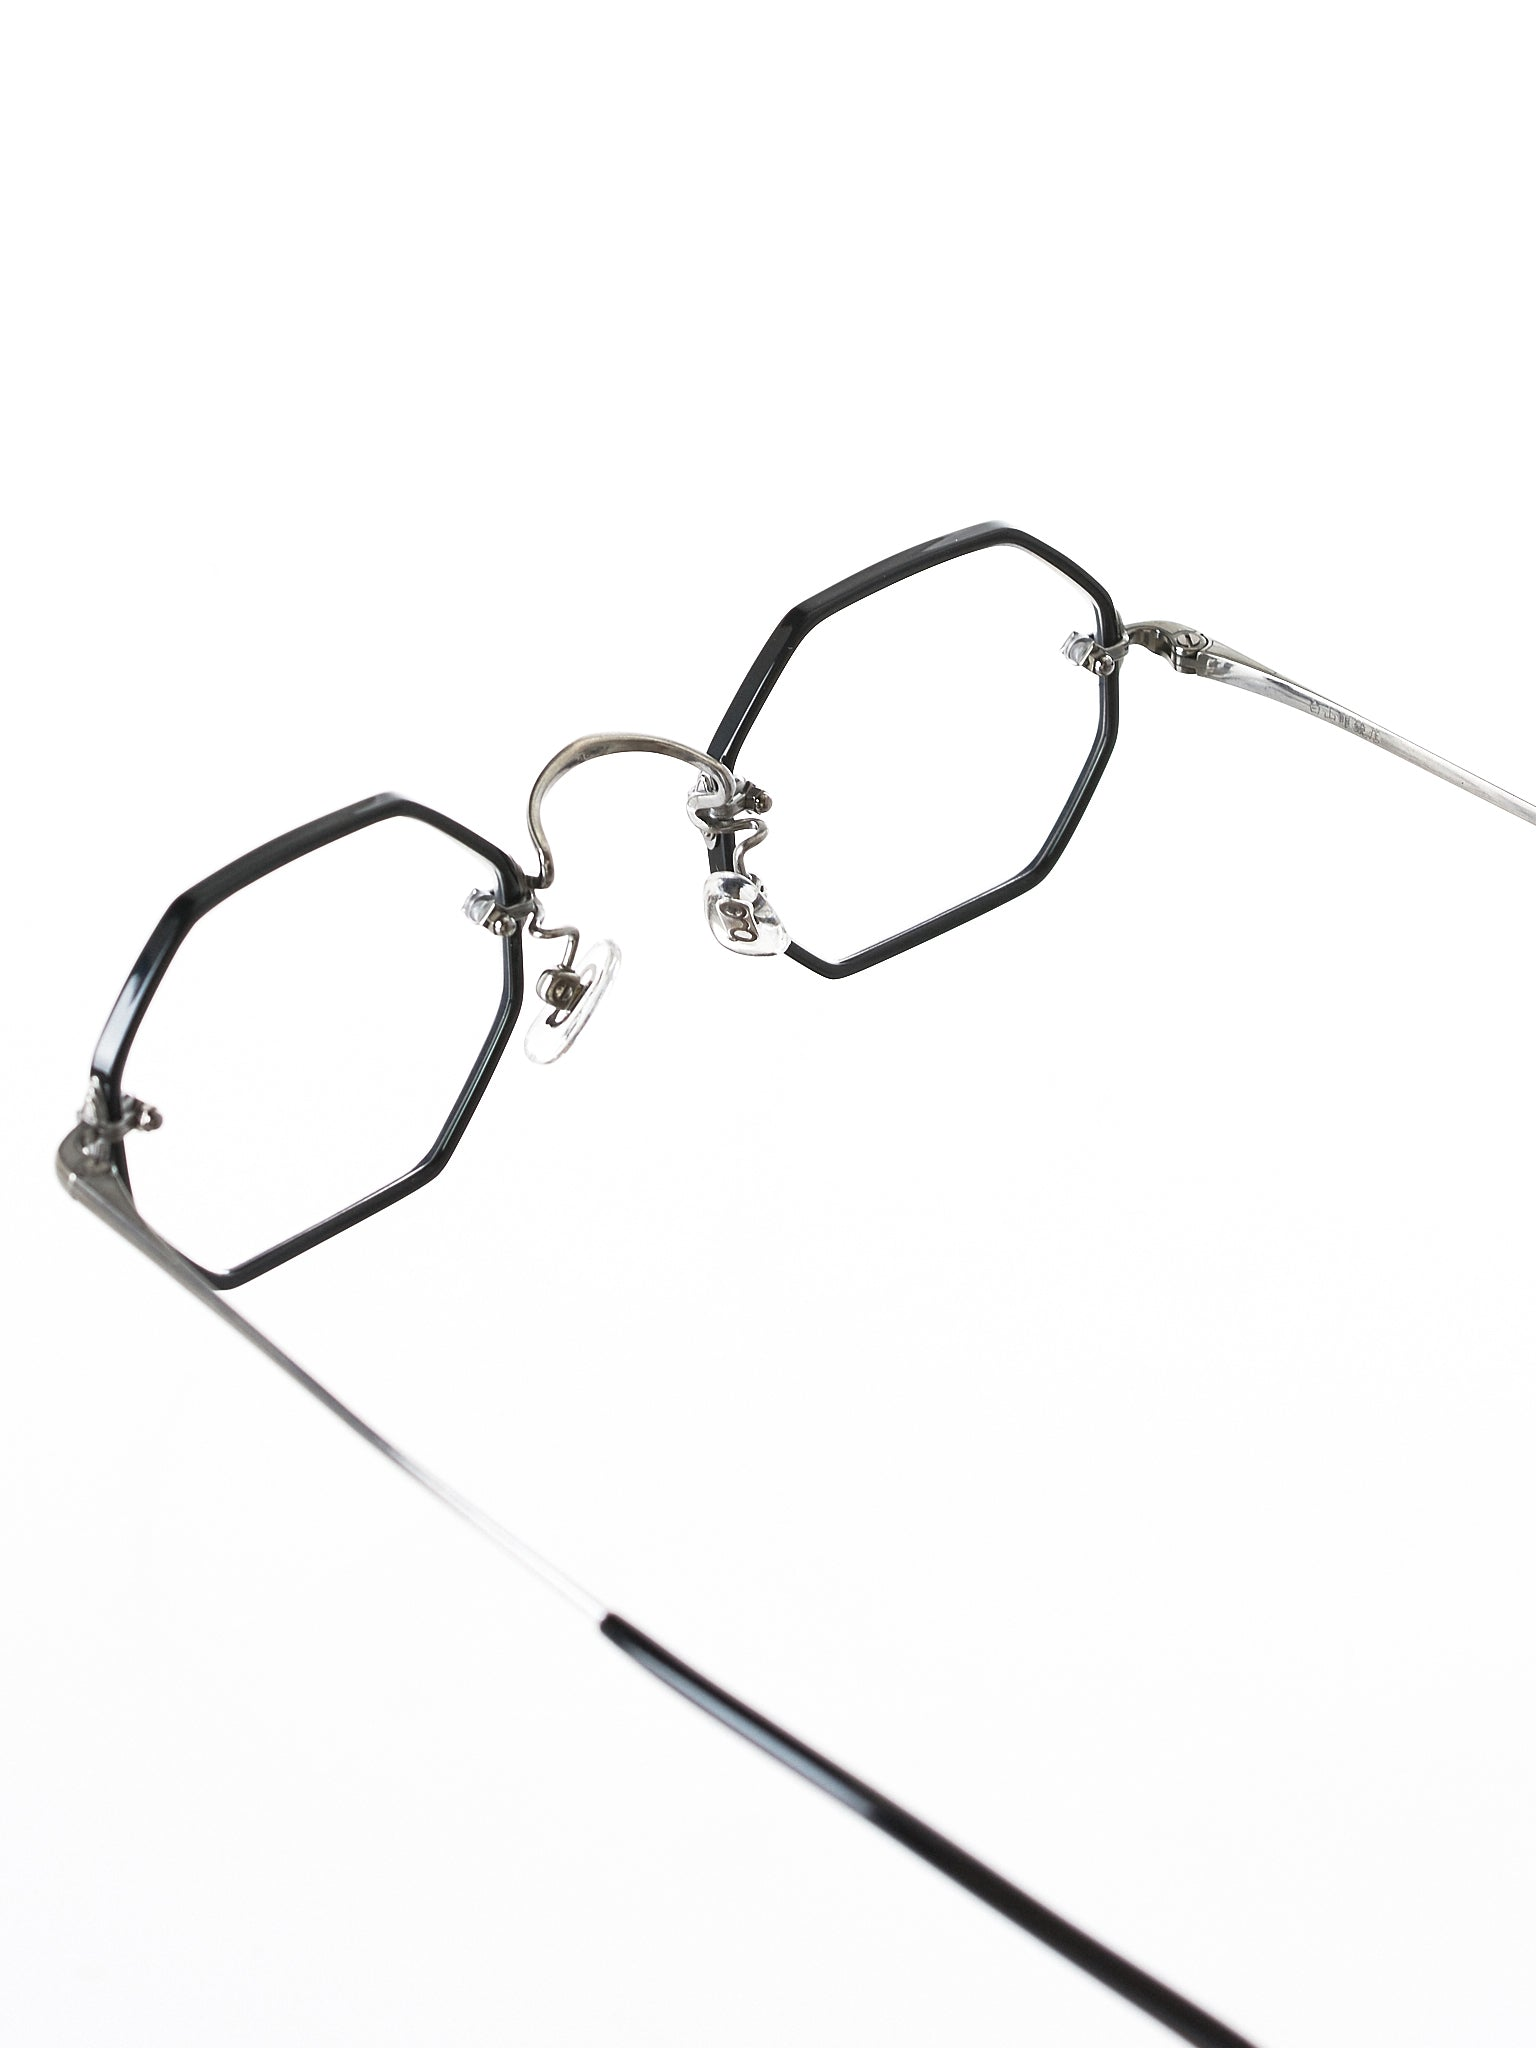 ANAAKI Octagon Glasses (ANAAKI-RIM-OCTA-BLK-AS-CLEAR)